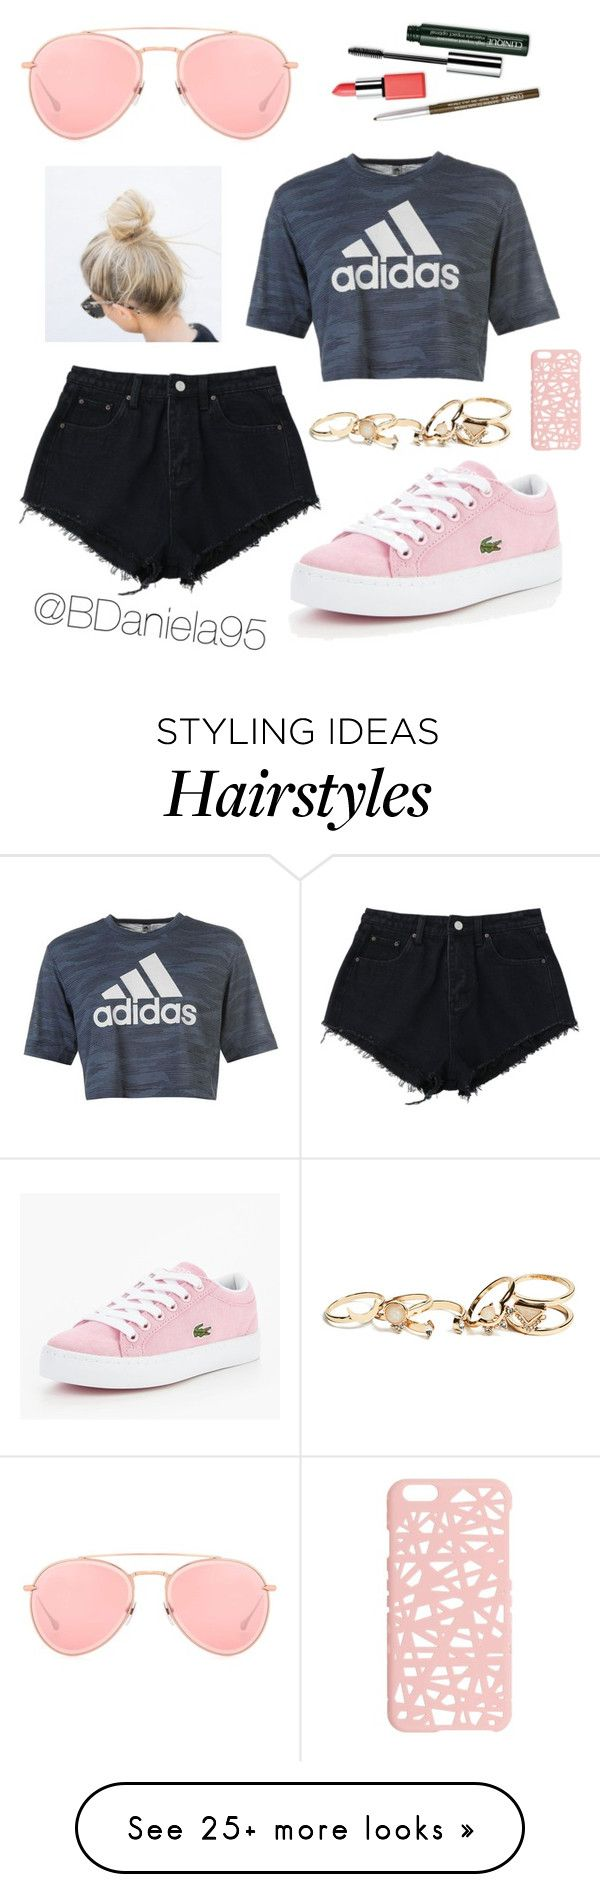 """Untitled #287"" by daniela95140 on Polyvore featuring Dita, adidas, Lacoste, Clinique, Miss Selfridge and GUESS"